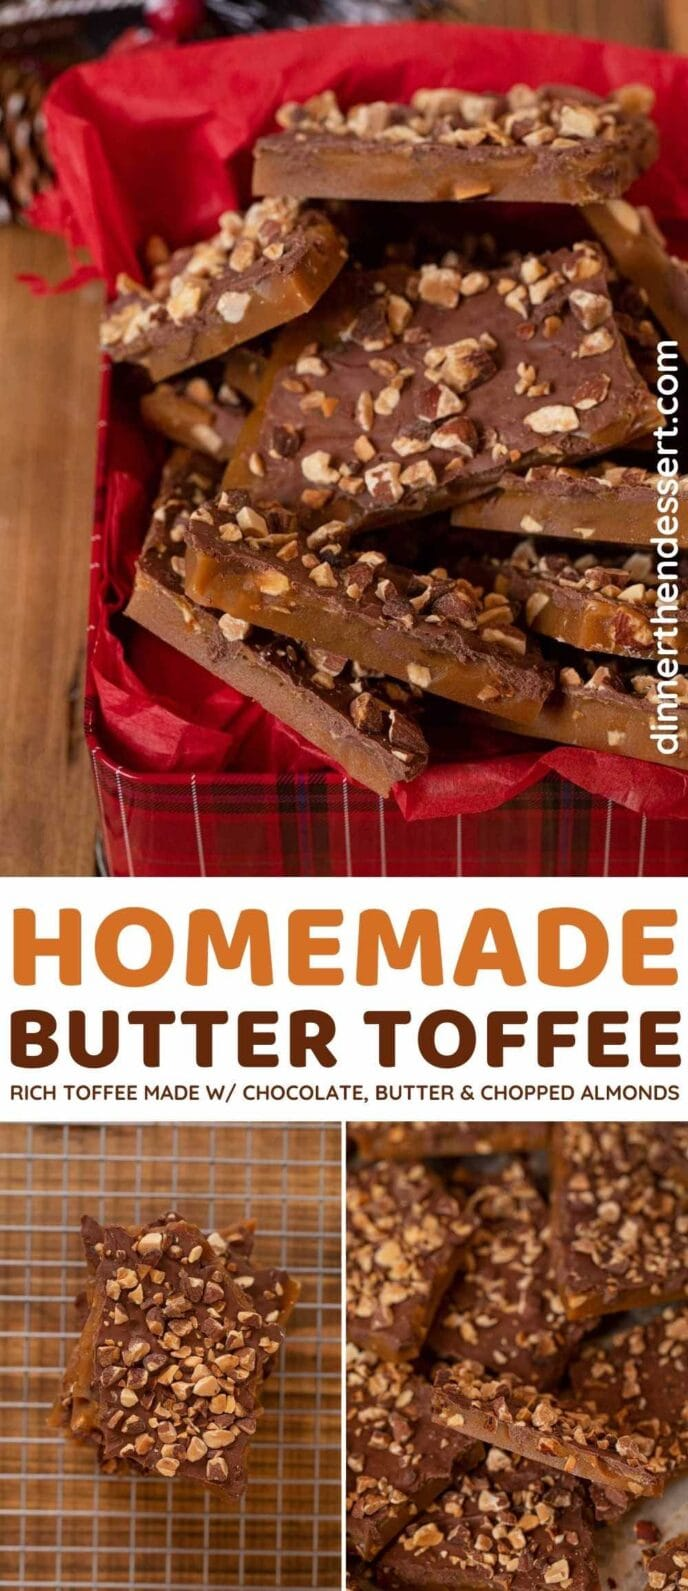 Homemade Butter Toffee collage